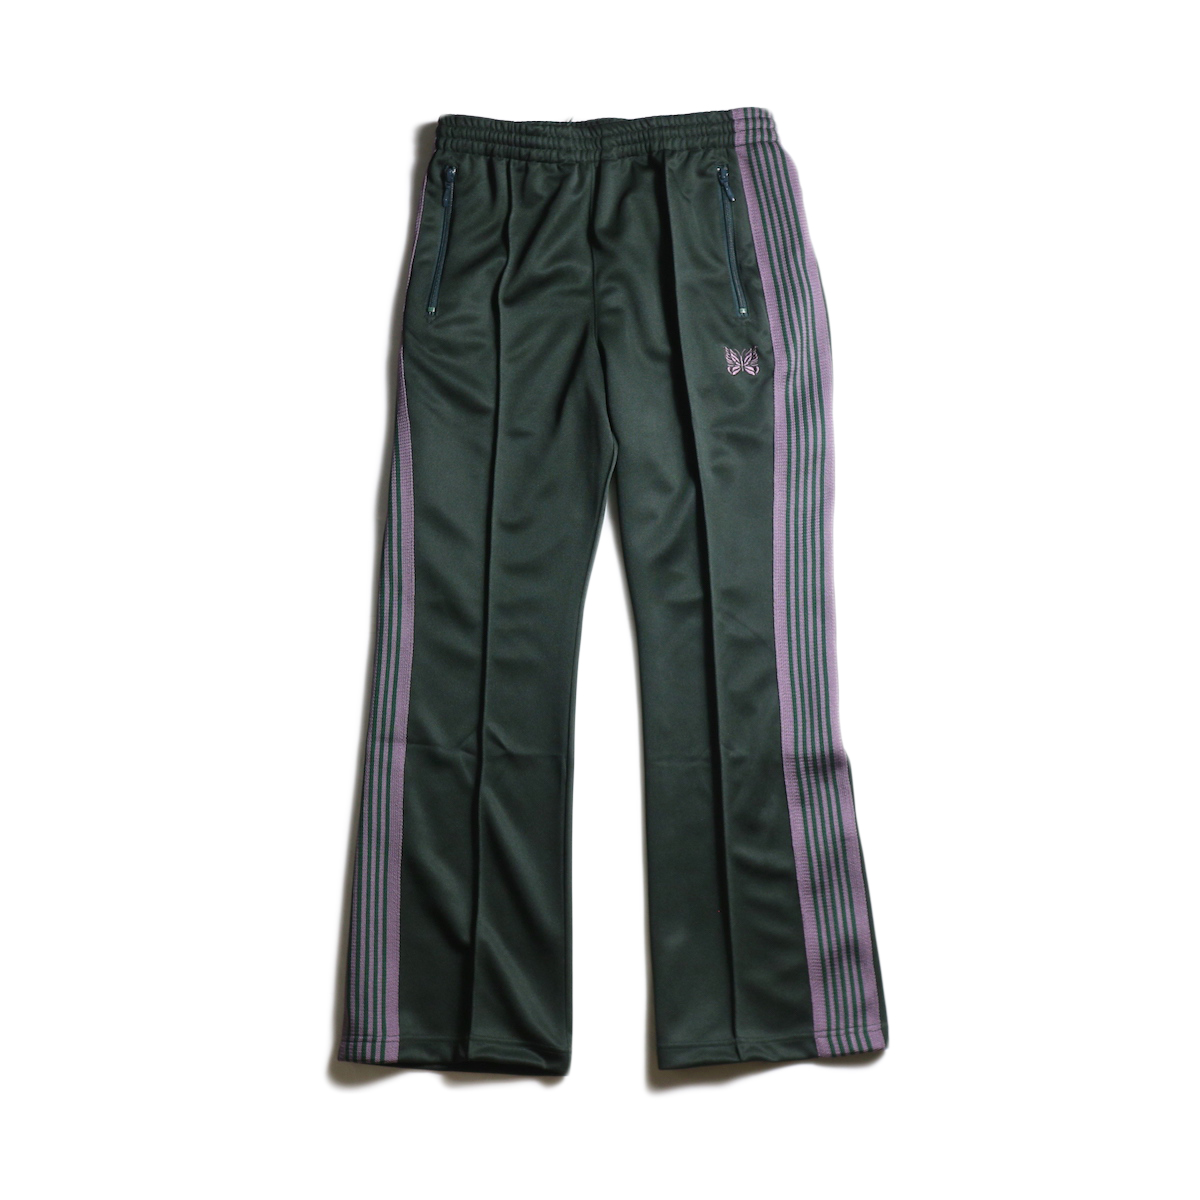 Needles / Boot-Cut Track Pant -Poly Smooth (Green)